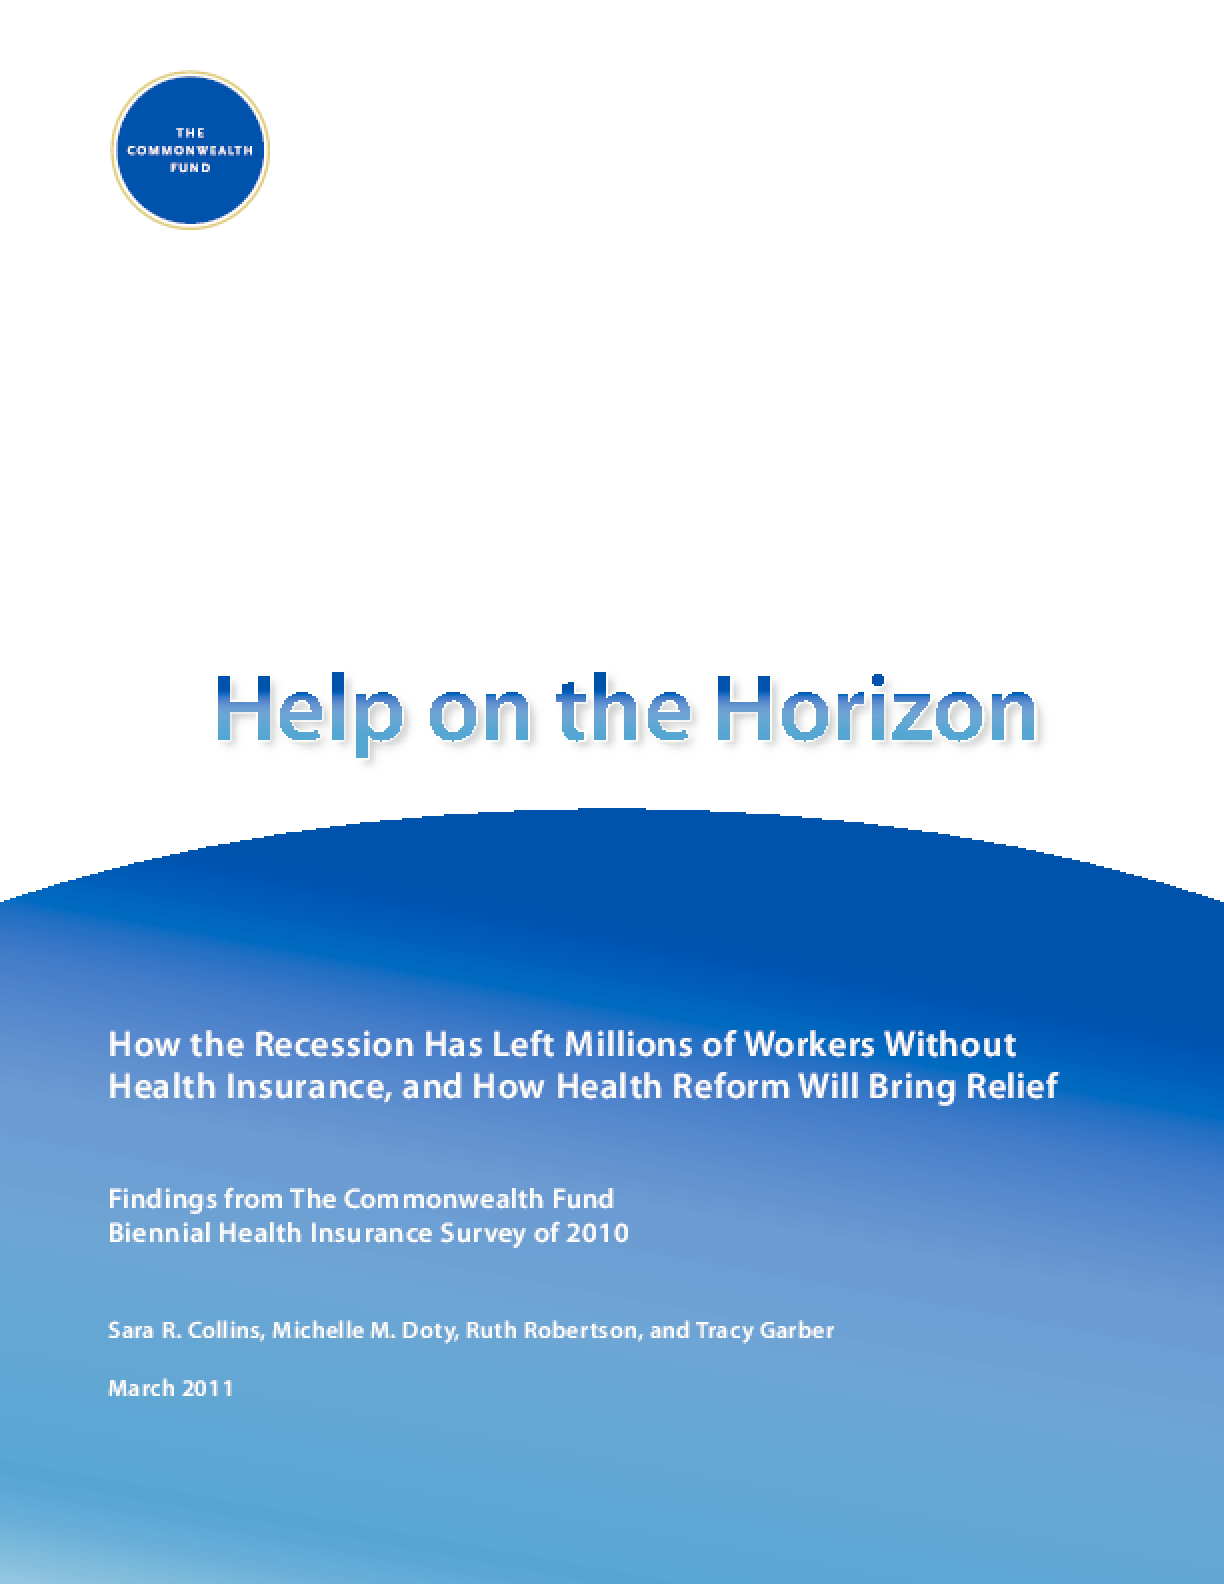 Help on the Horizon: How the Recession Has Left Millions of Workers Without Health Insurance, and How Health Reform Will Bring Relief